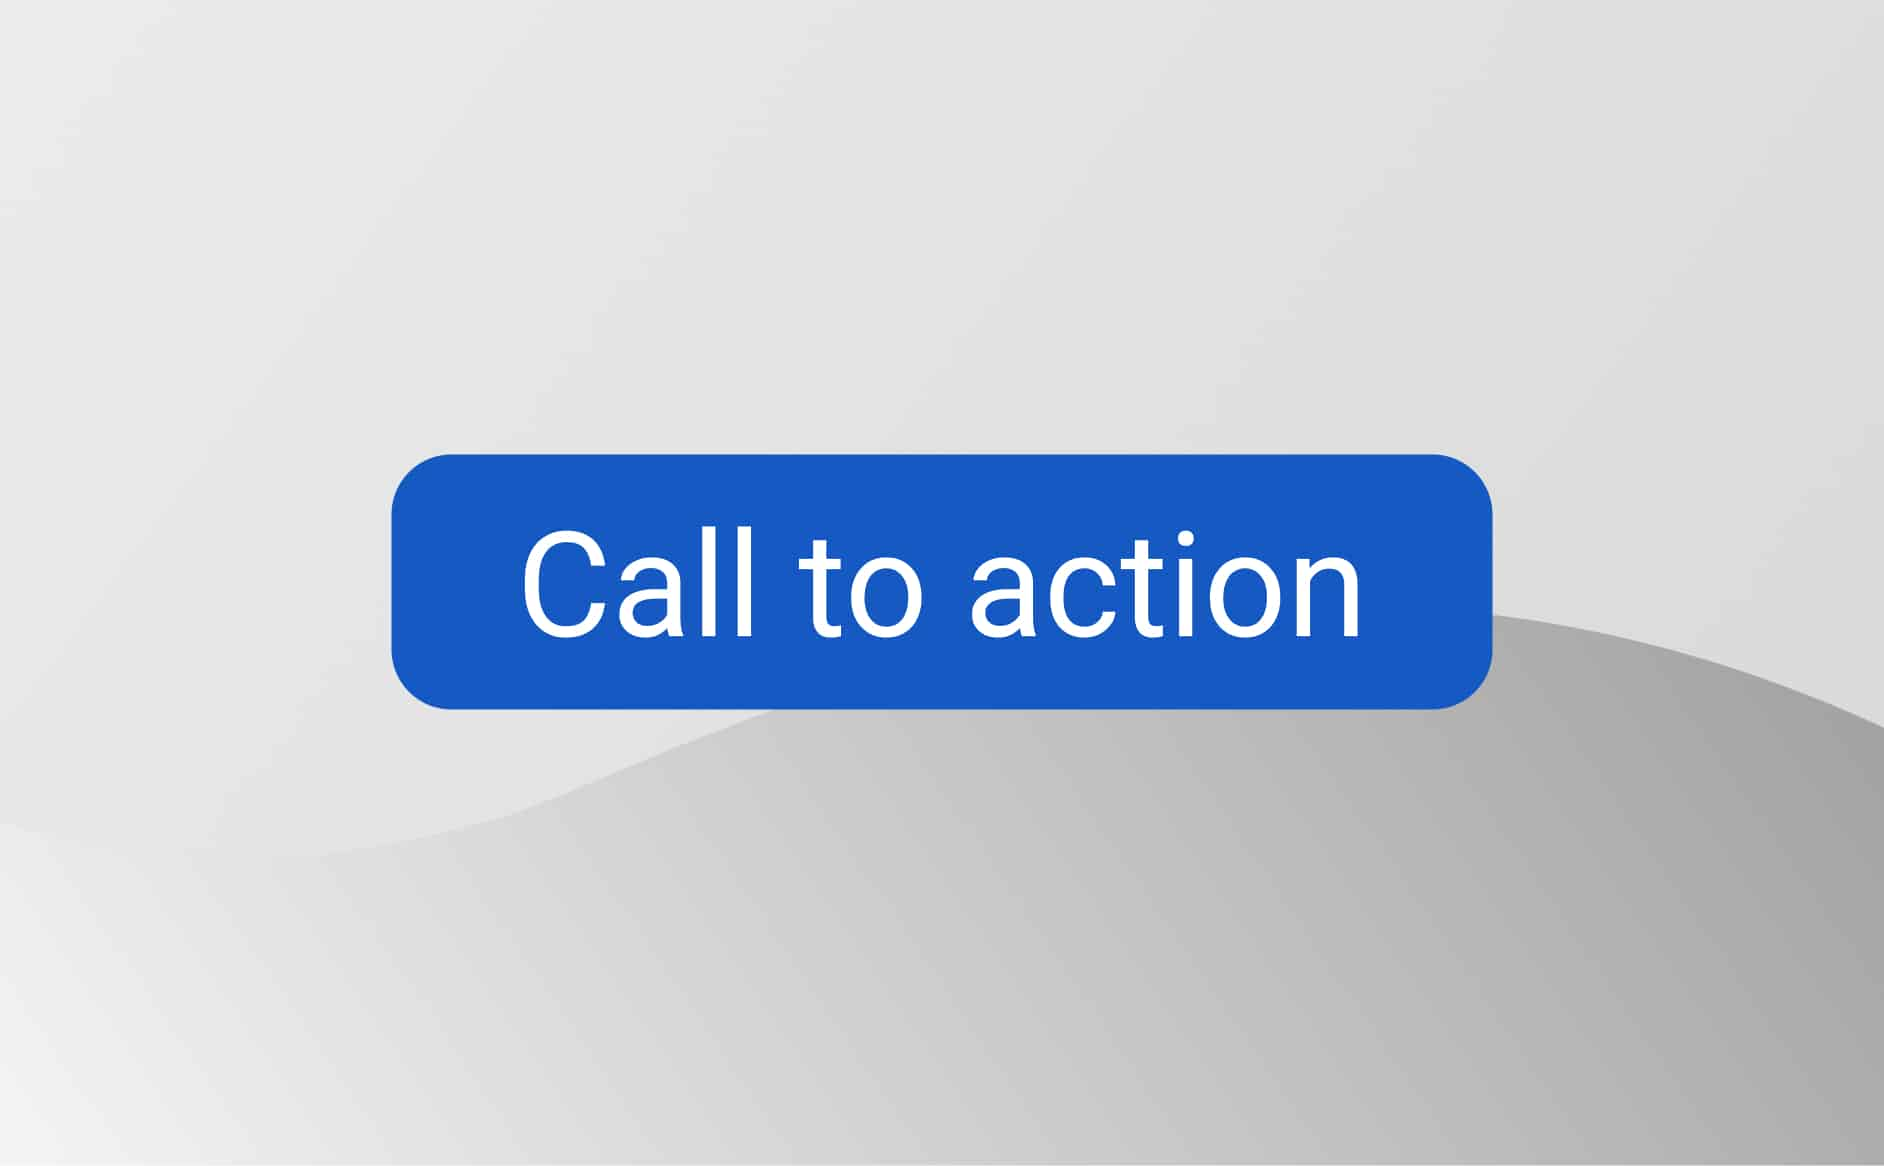 Bouton-call-to-action